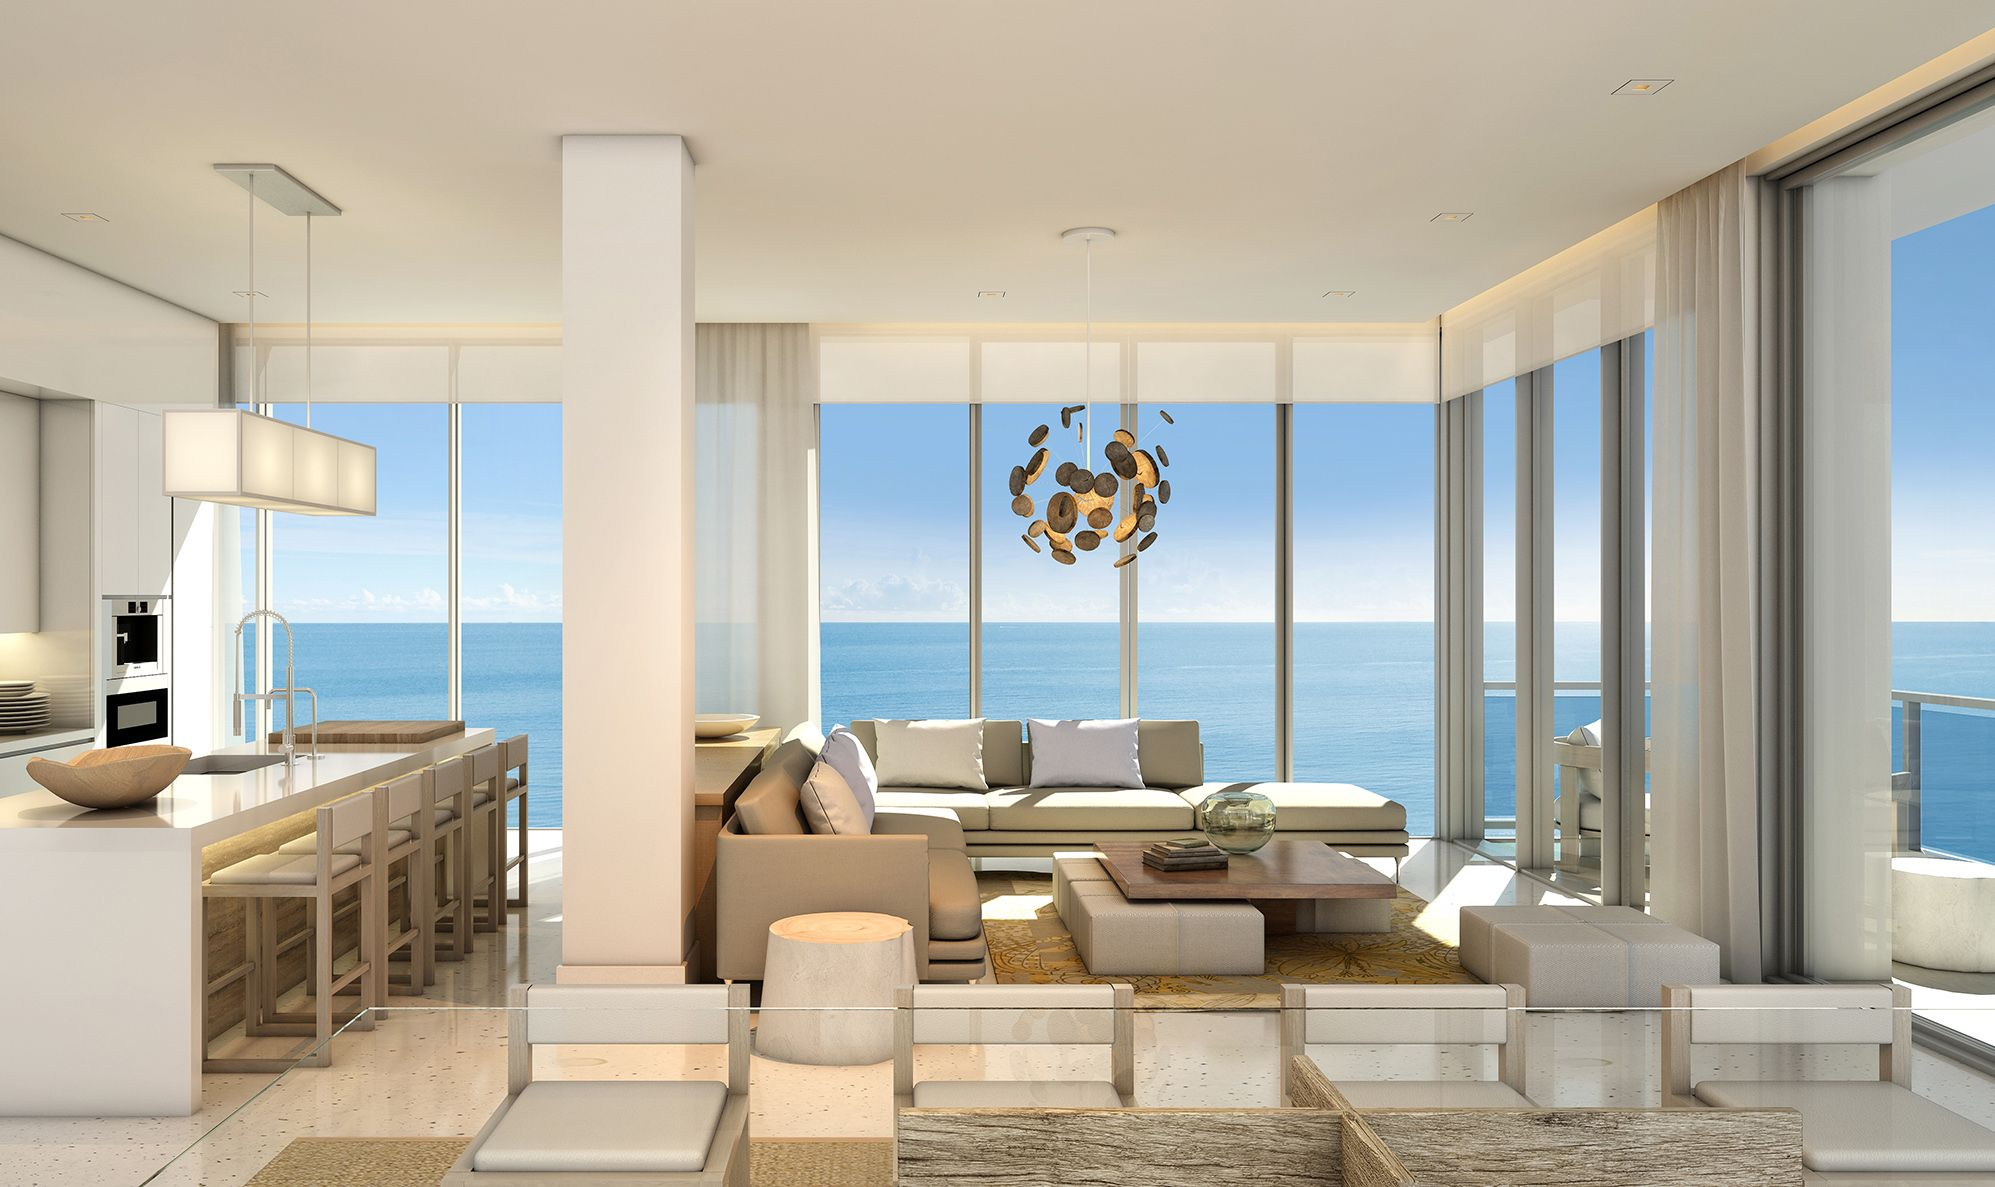 1 Hotel South Beach   10. Contemporary Residencies at The 1 South Beach Hotel   Luxury